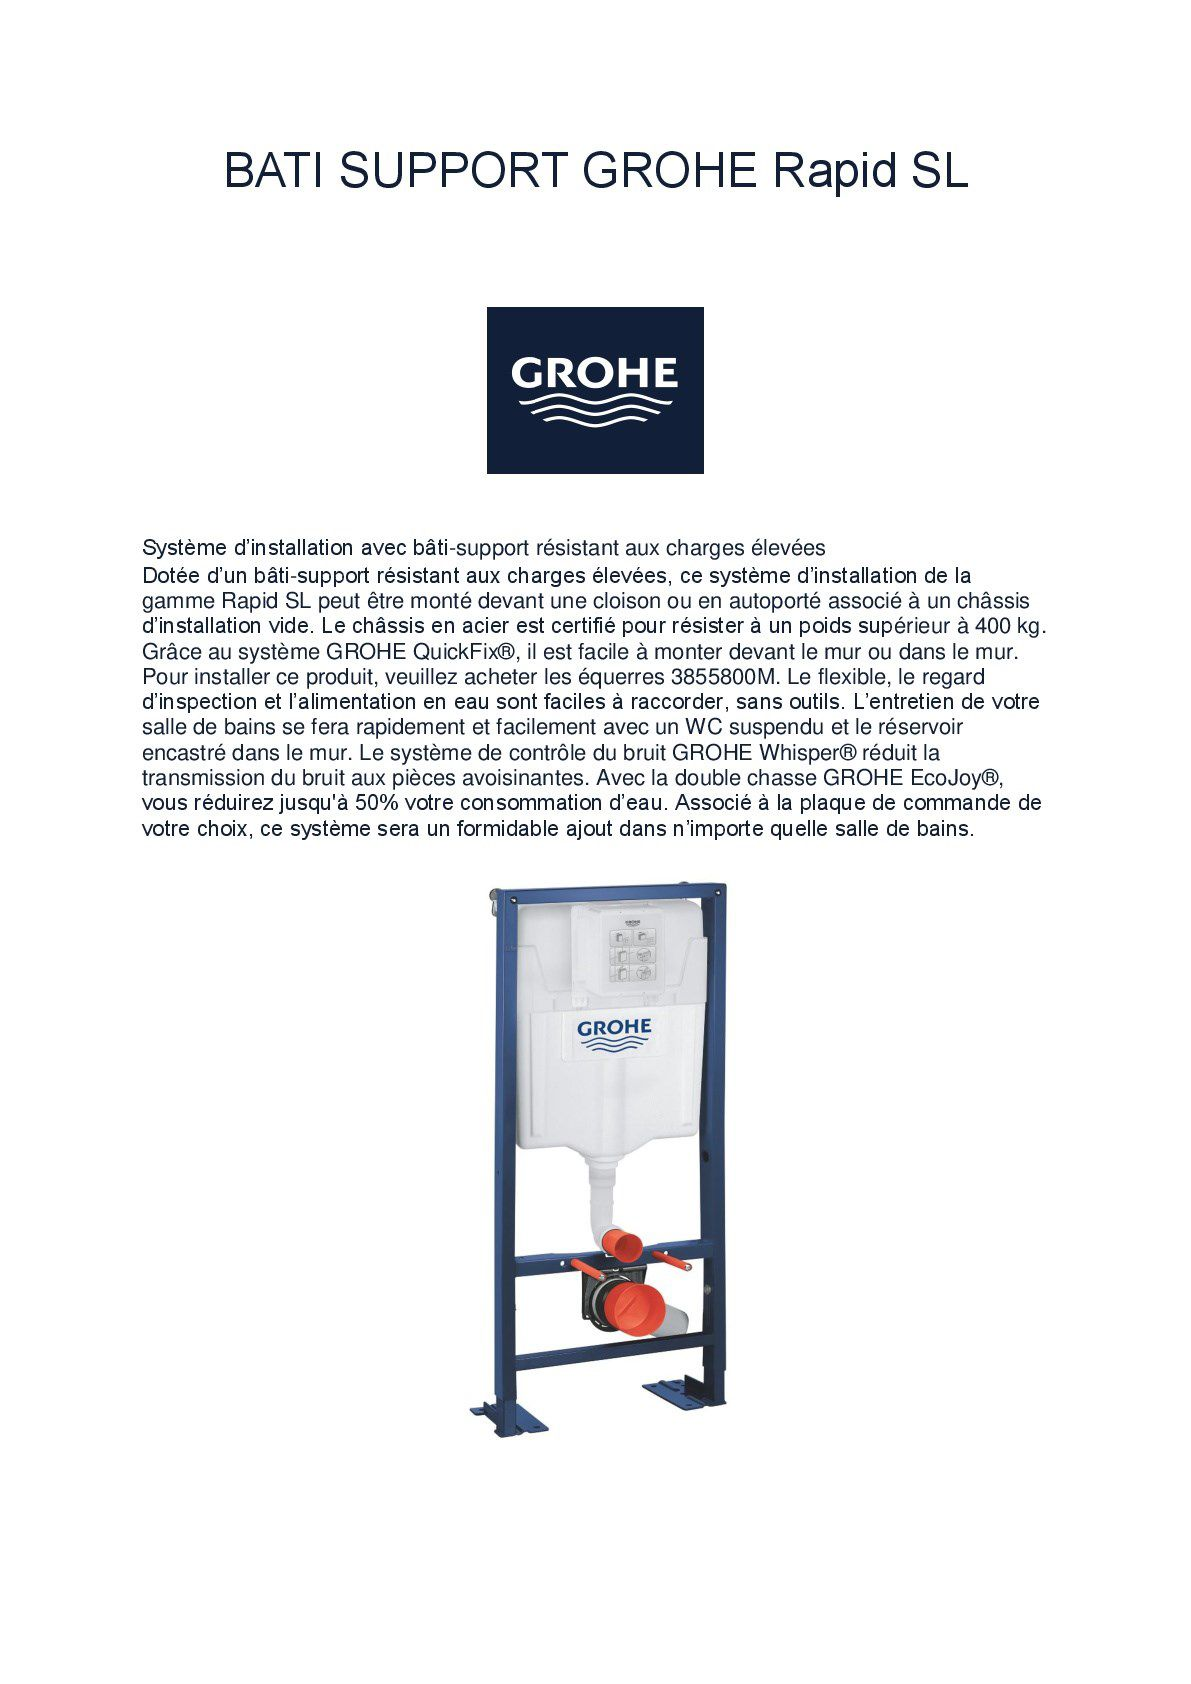 Wc Suspendu Grohe Dimension pack complet wc suspendu grohe bâti-support 113 cm + plaque